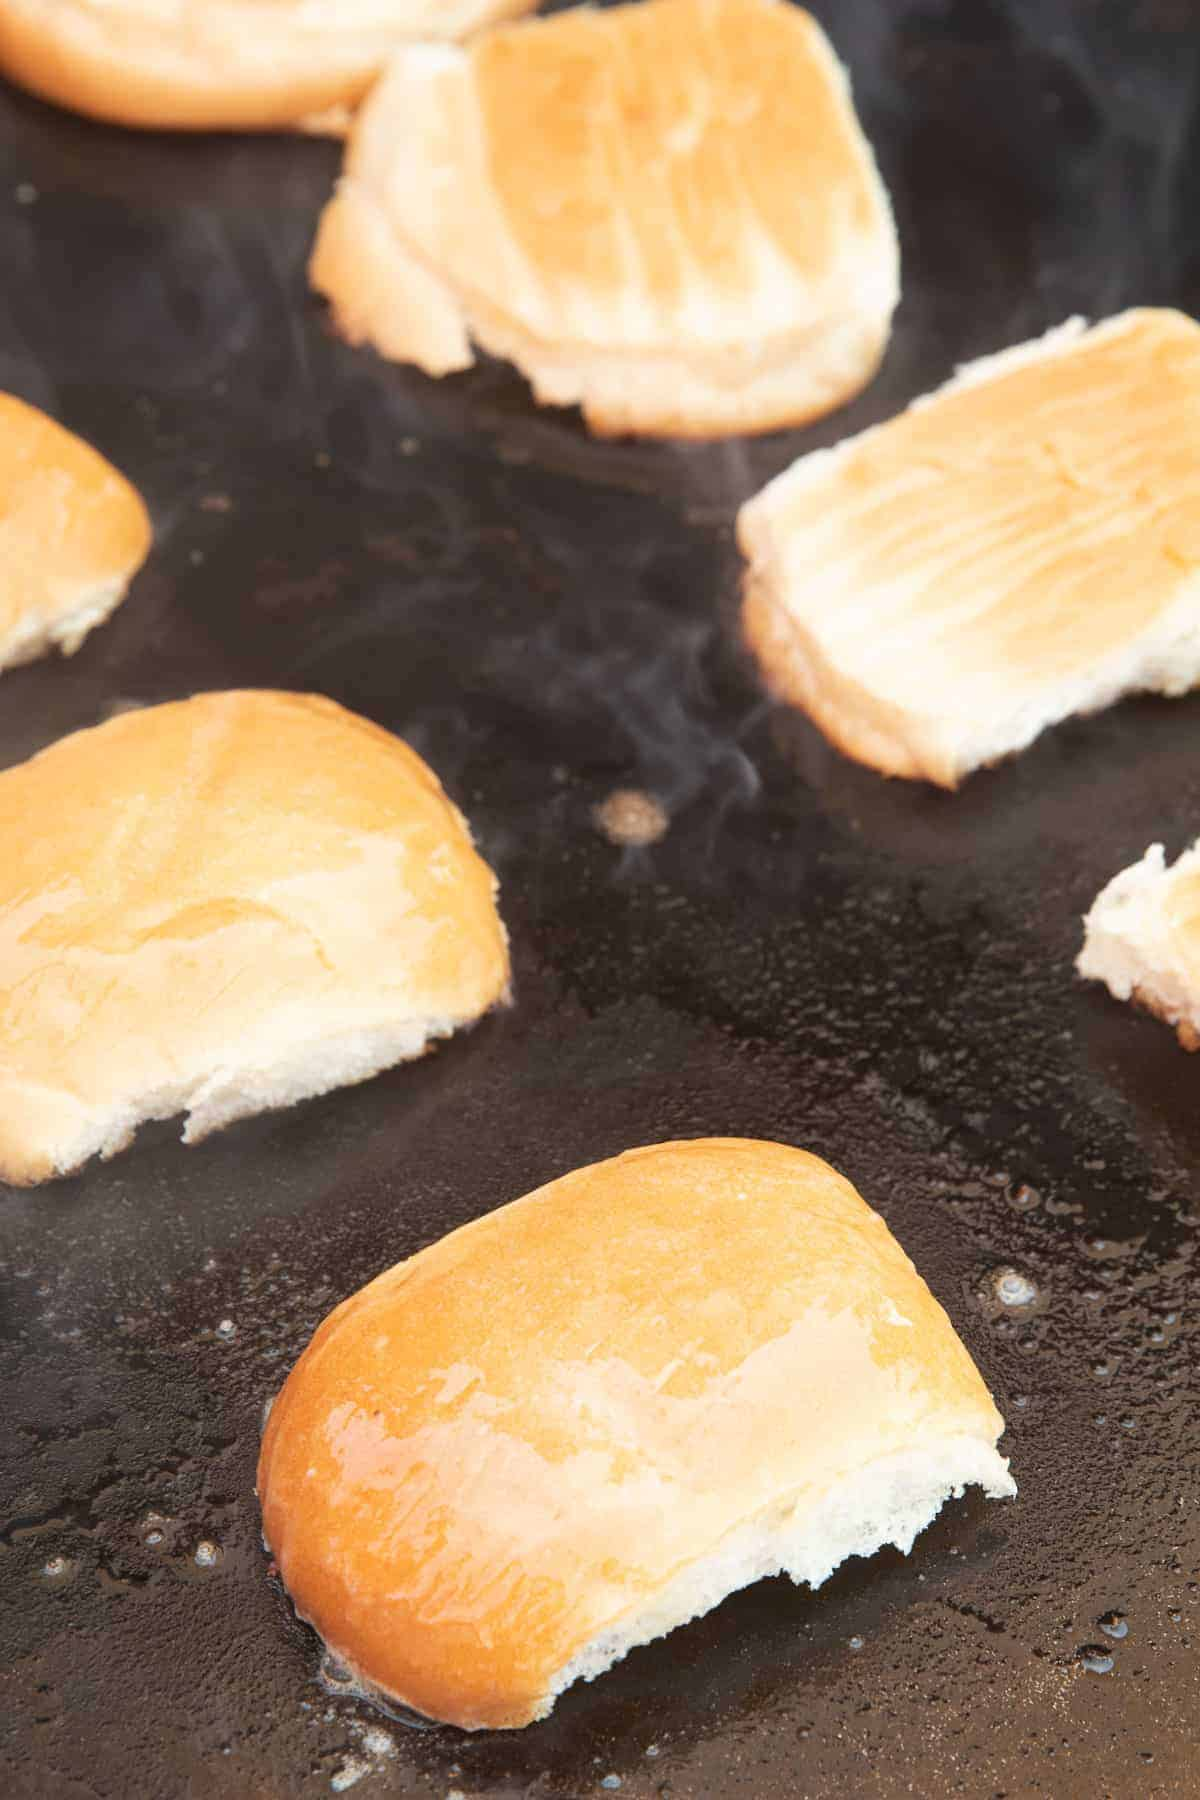 Buttered buns being toasted on griddle